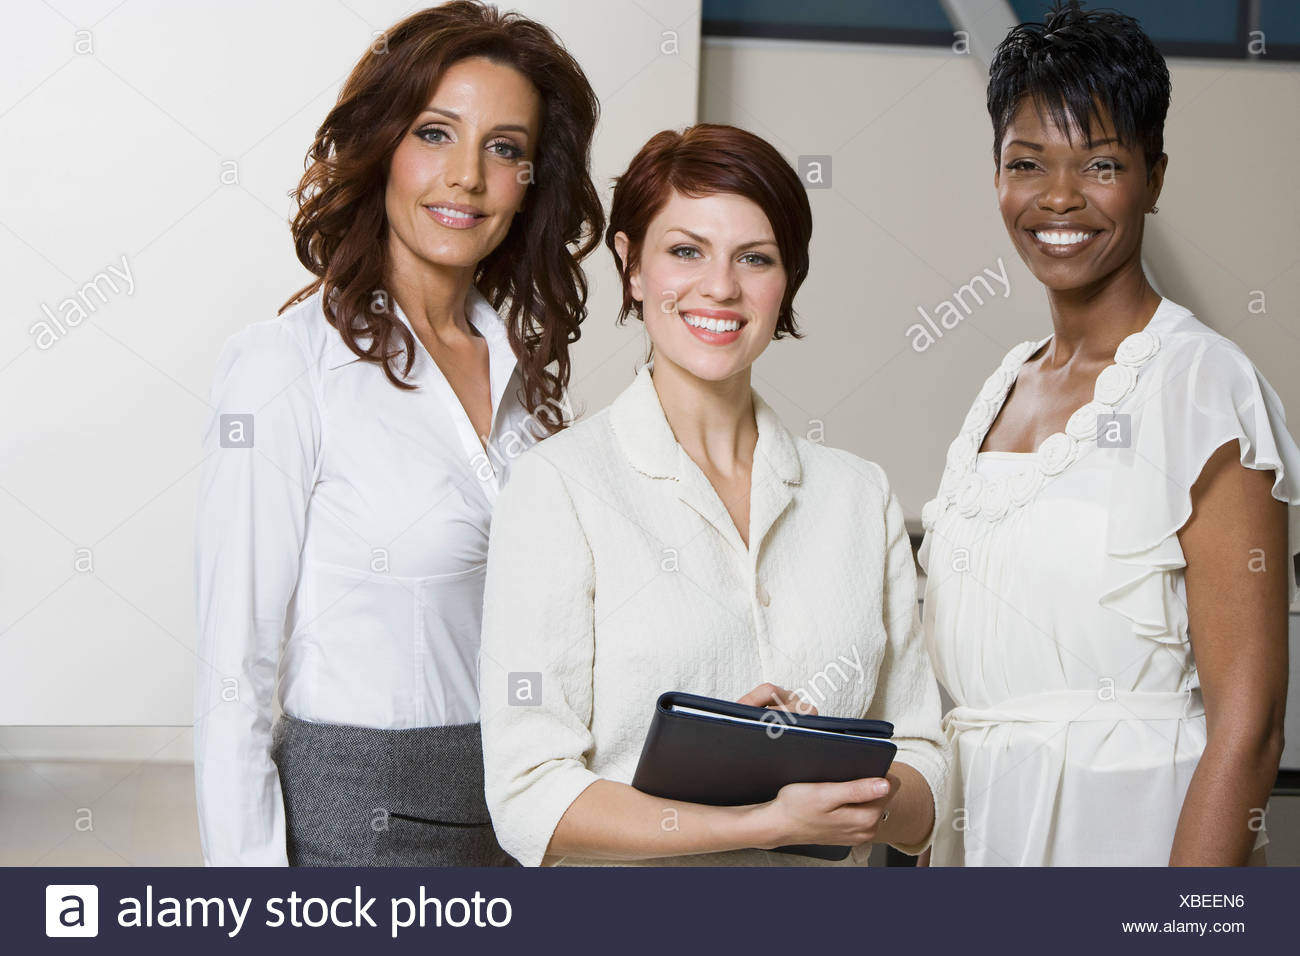 Multi Racial Group of Businesswomen, Portrait - Stock Image